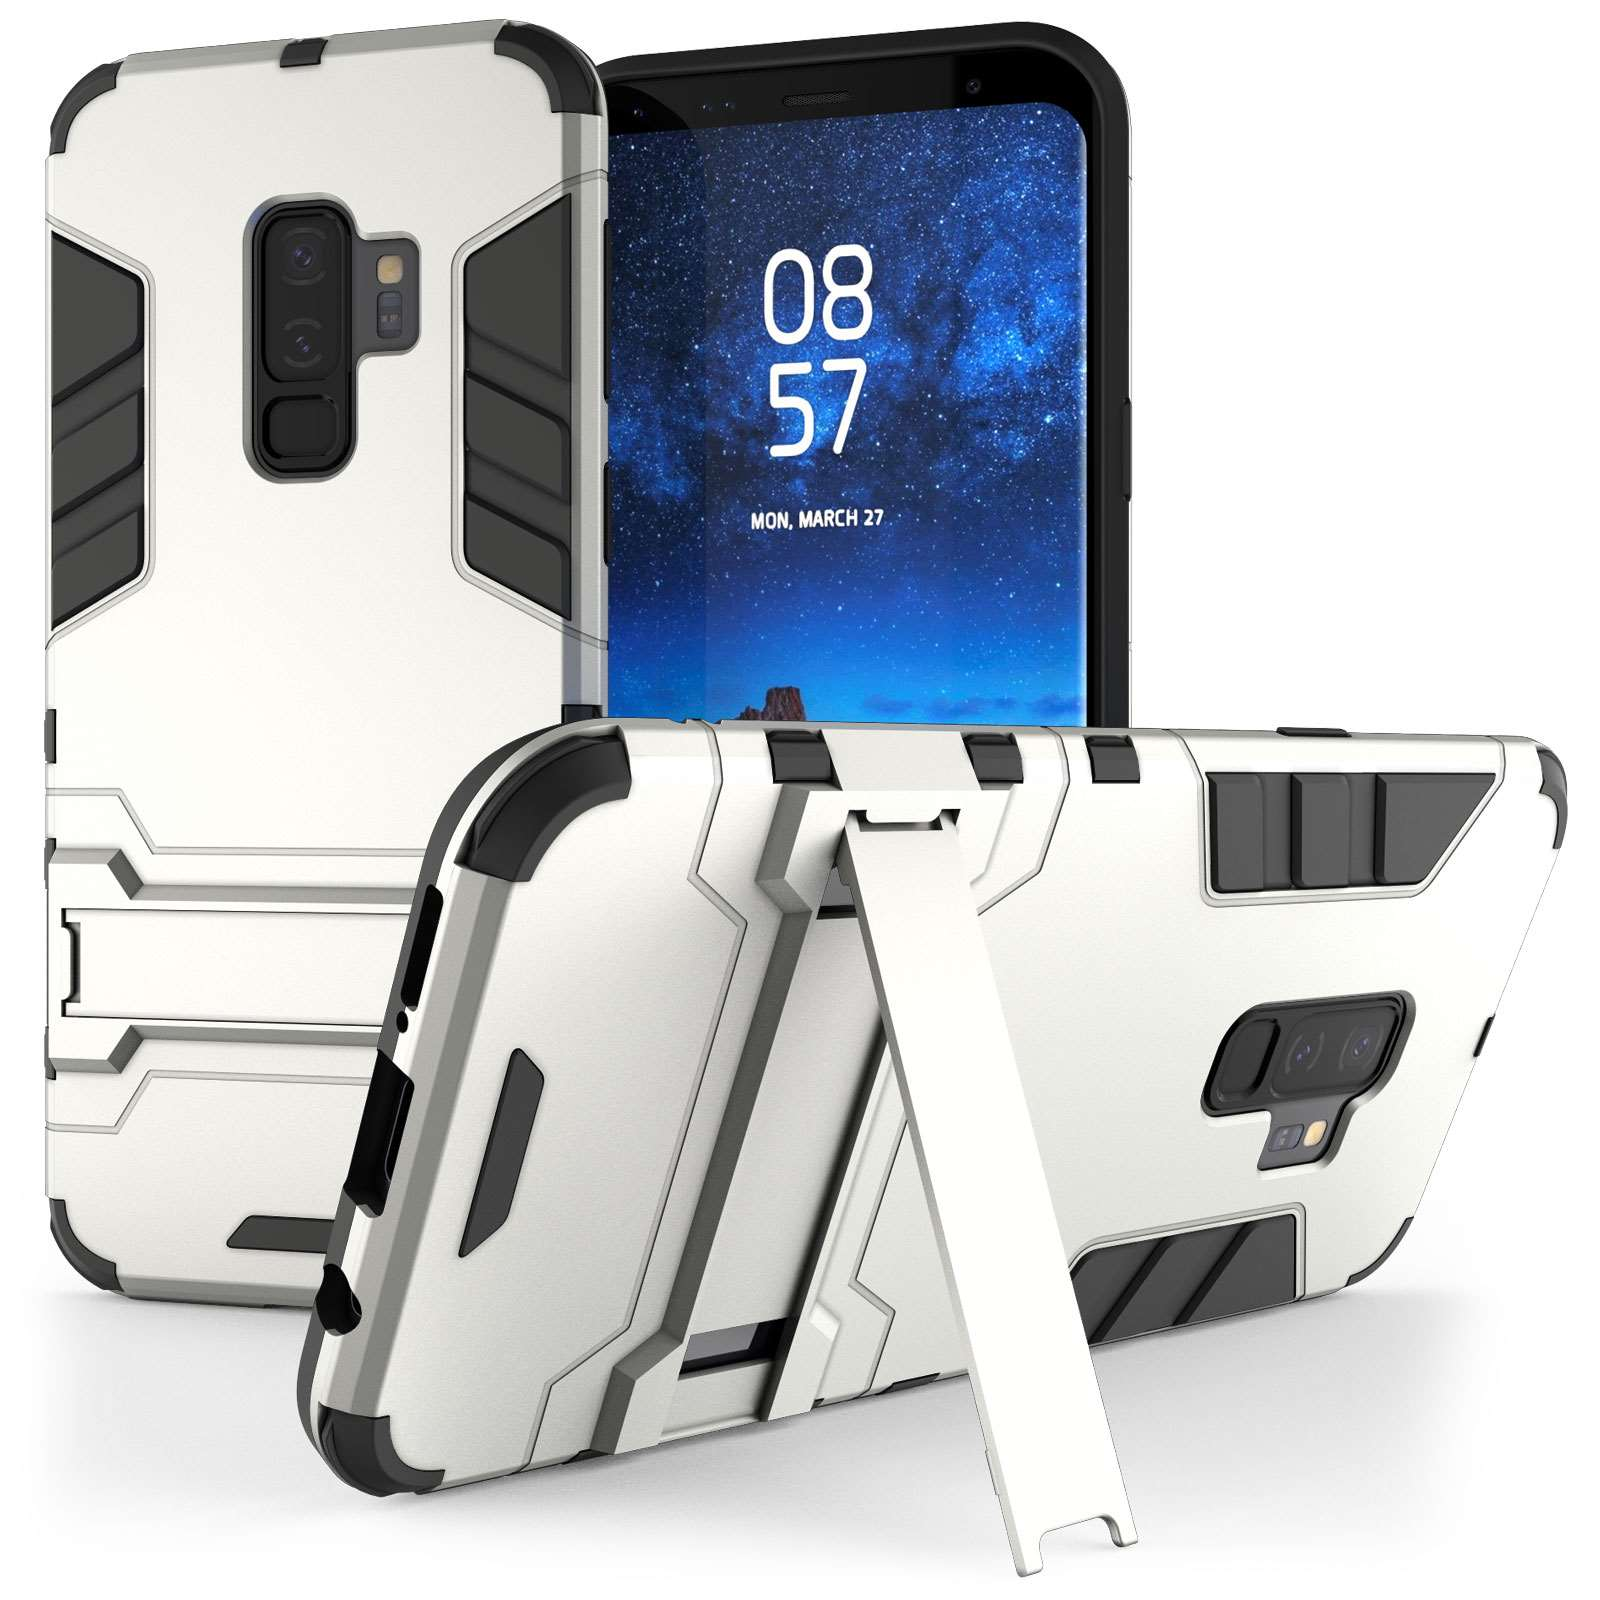 separation shoes 1af2b 56271 Caseflex Samsung Galaxy S9 Plus Armour Kickstand Case - Silver